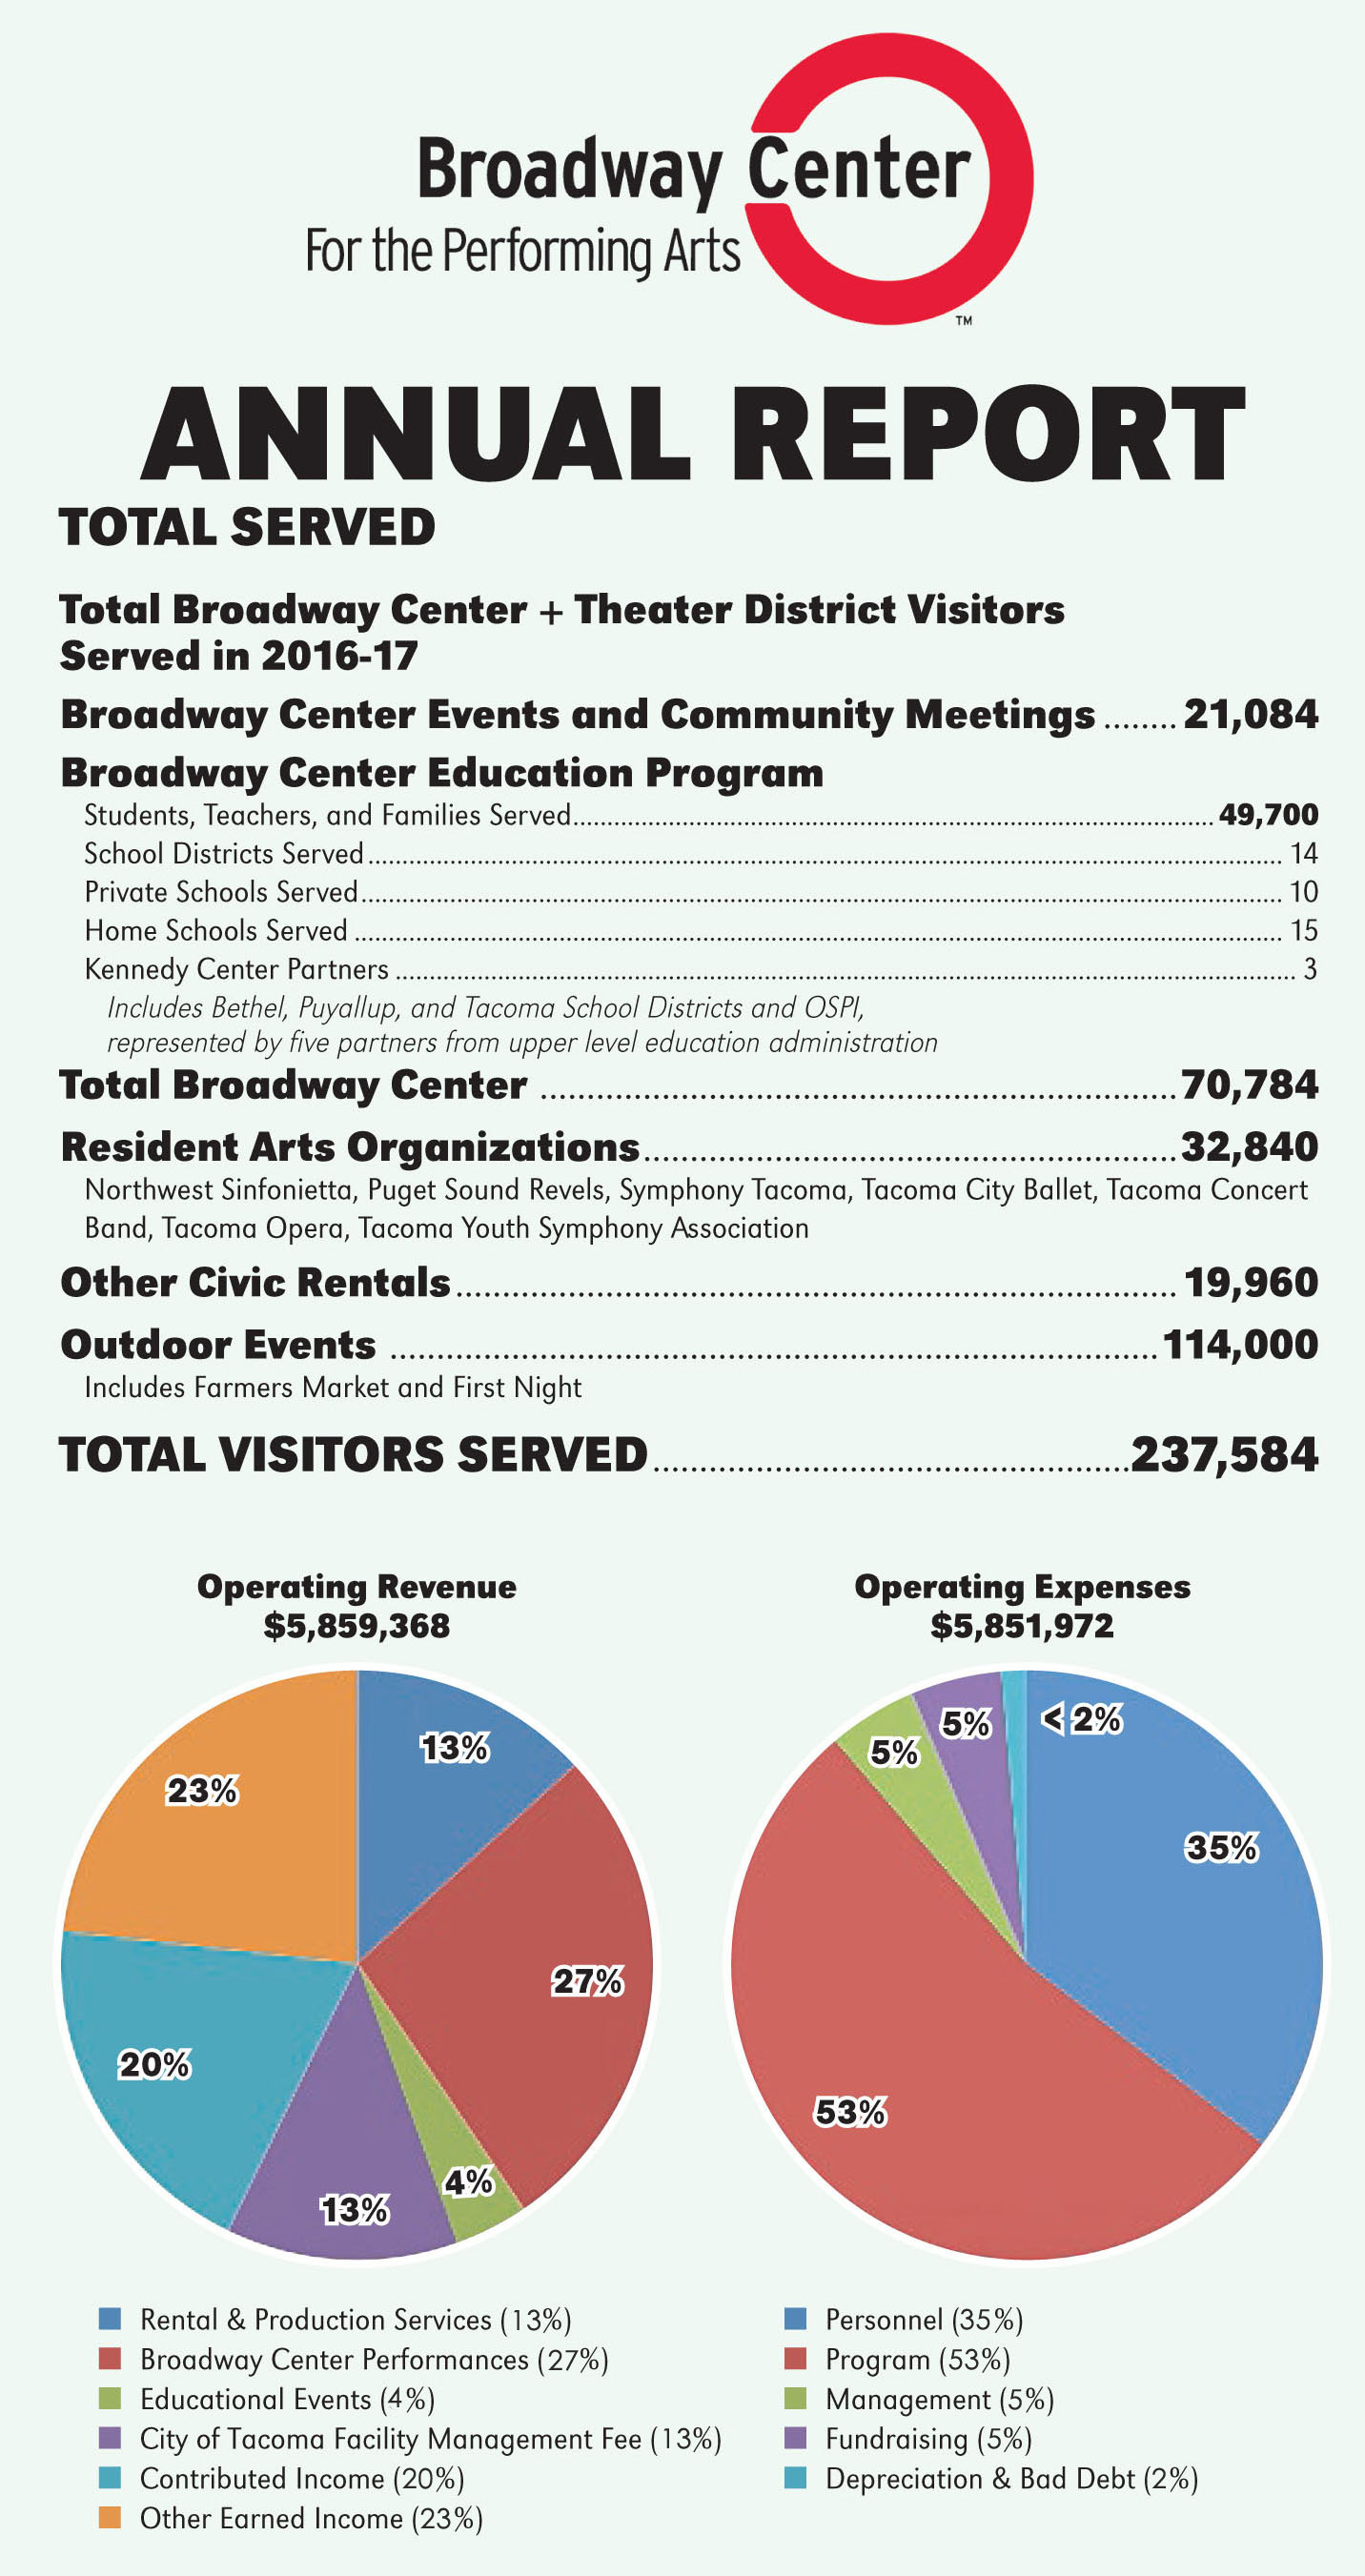 BroadwayCenter_AnnualReport1617_FINAL.jpg